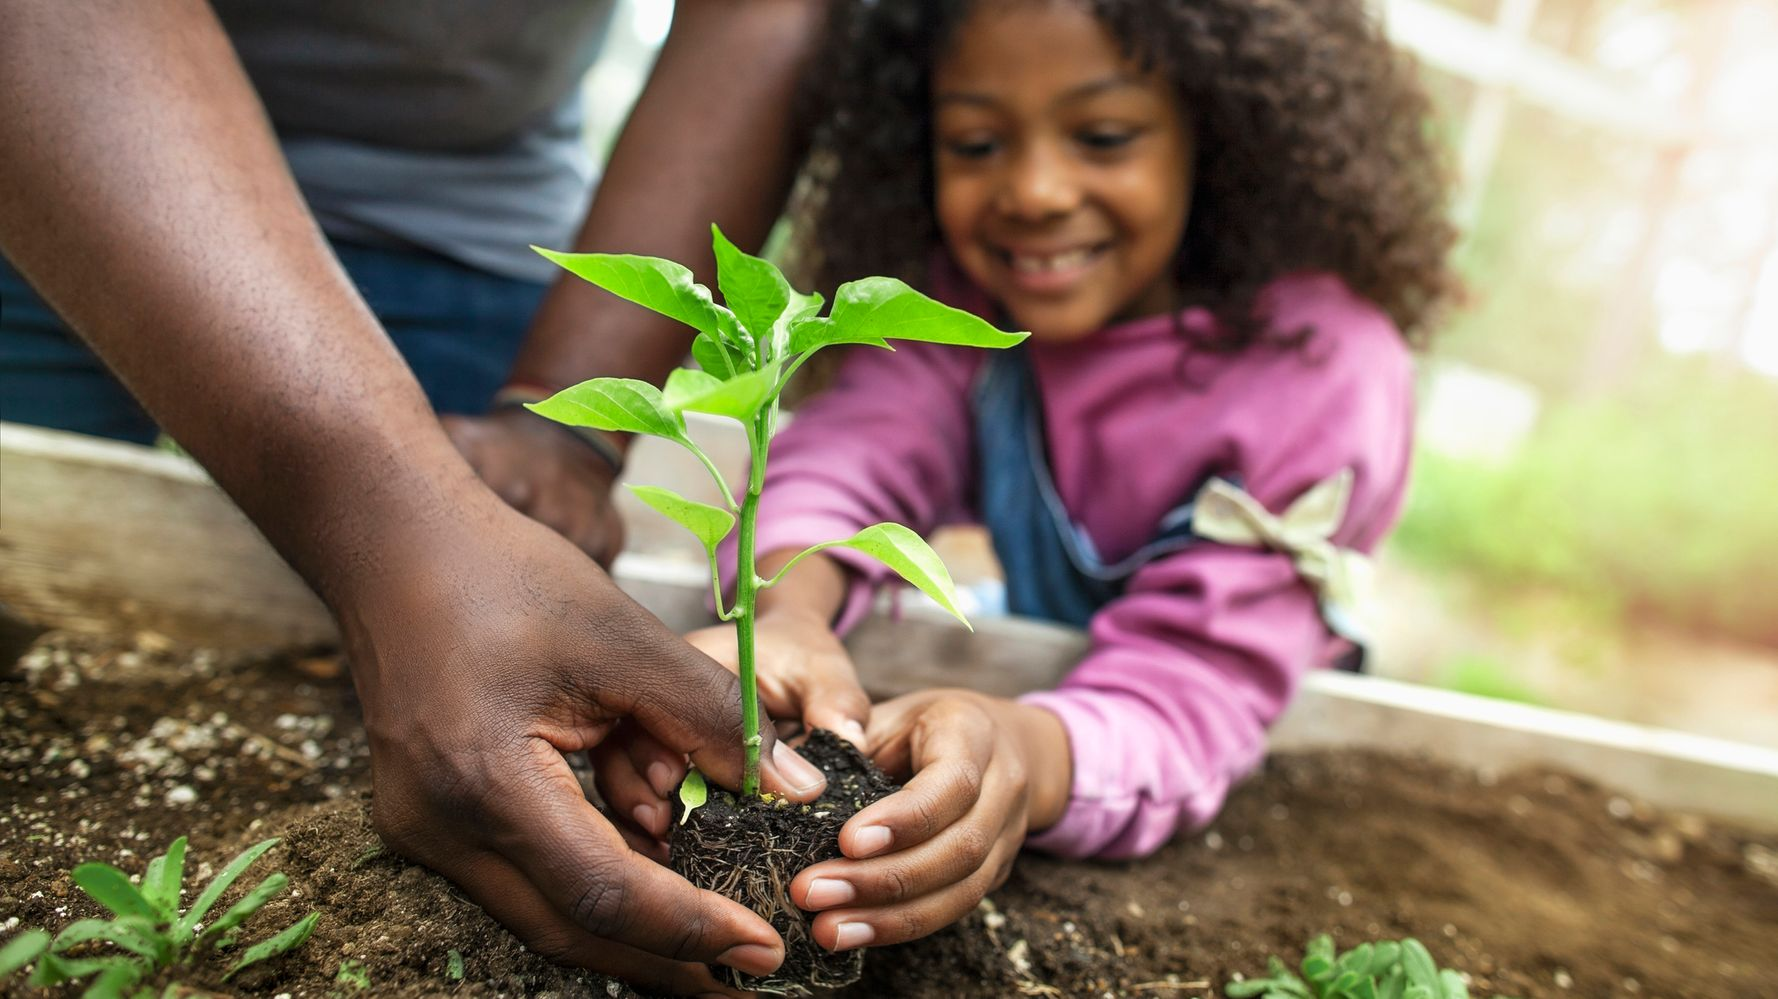 A young girl plants a sprout in a garden with the help of an adult